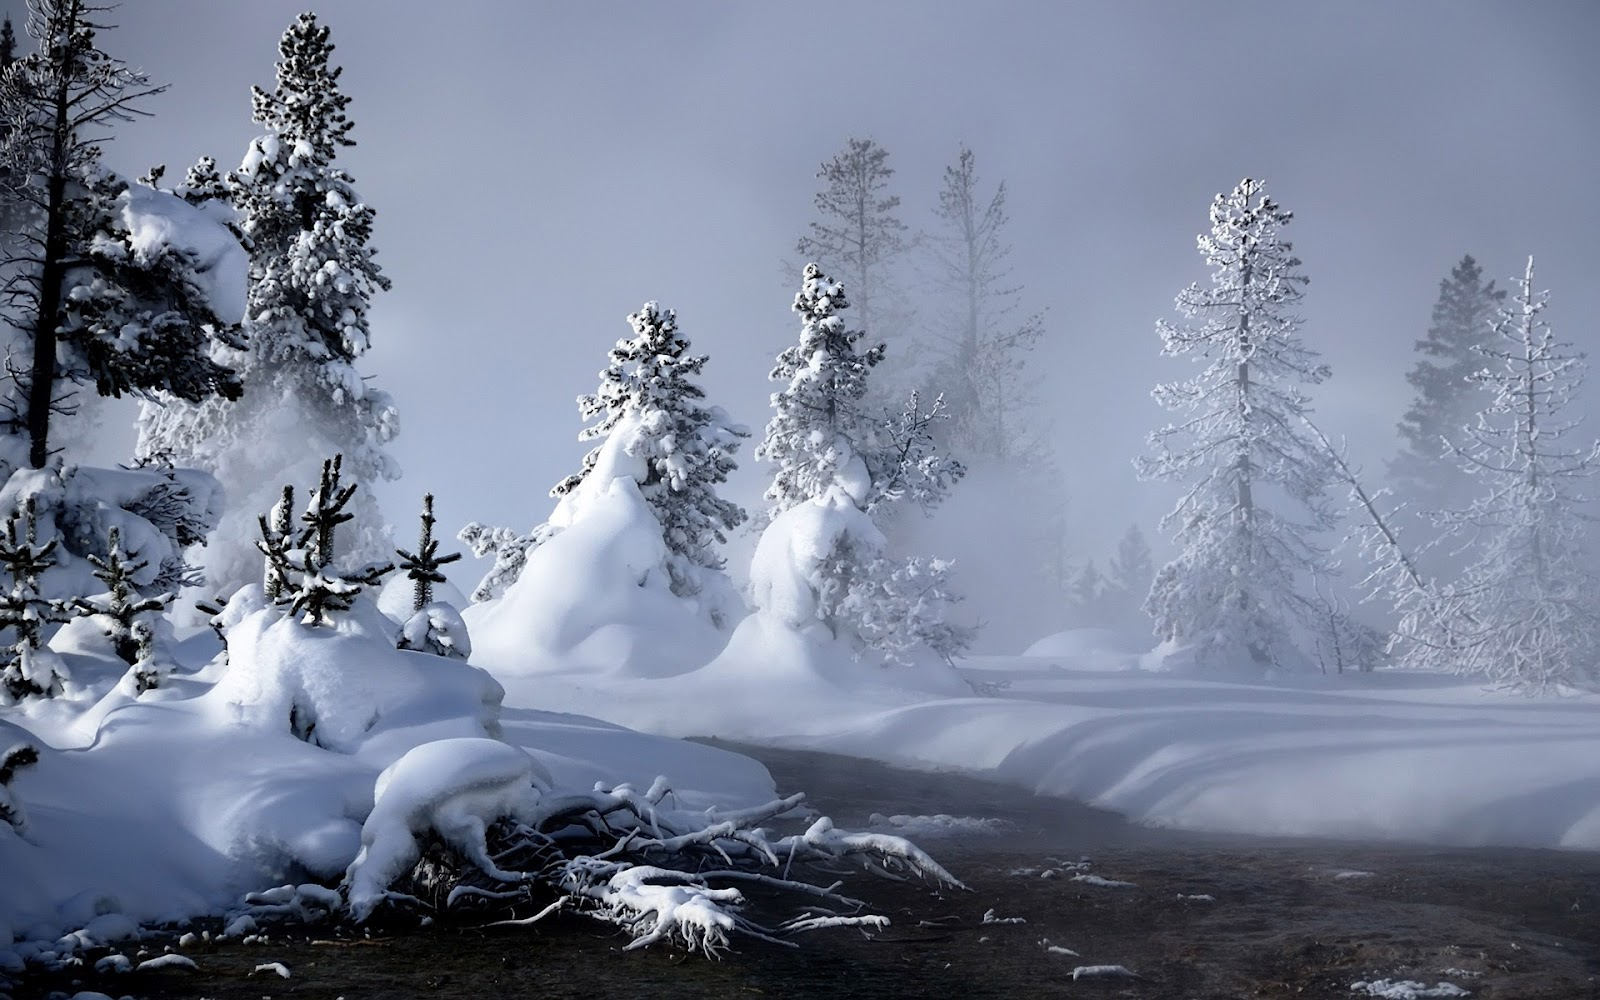 http://1.bp.blogspot.com/-tcGEvyw8i5E/Tz5Pc1_AEoI/AAAAAAAADJE/onfOwdplv4Y/s1600/winter_fog_hd_widescreen_wallpapers_1920x1200.jpeg